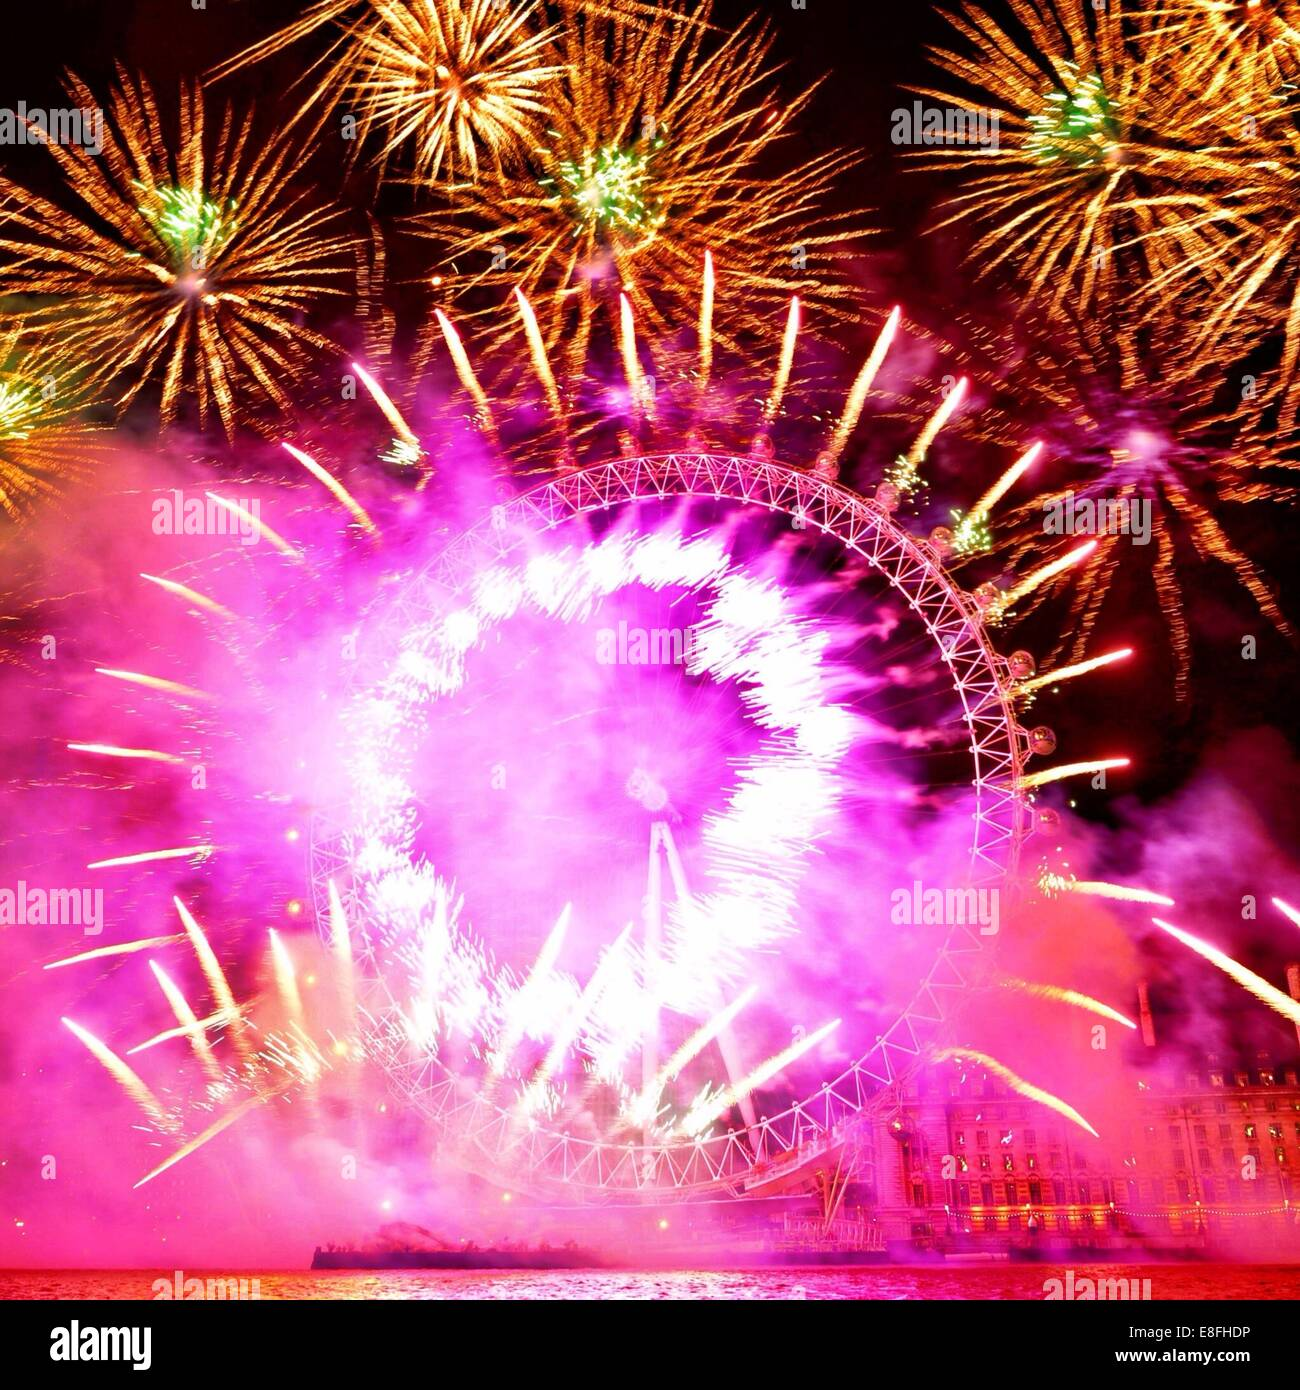 United Kingdom, London, London Eye fireworks - Stock Image